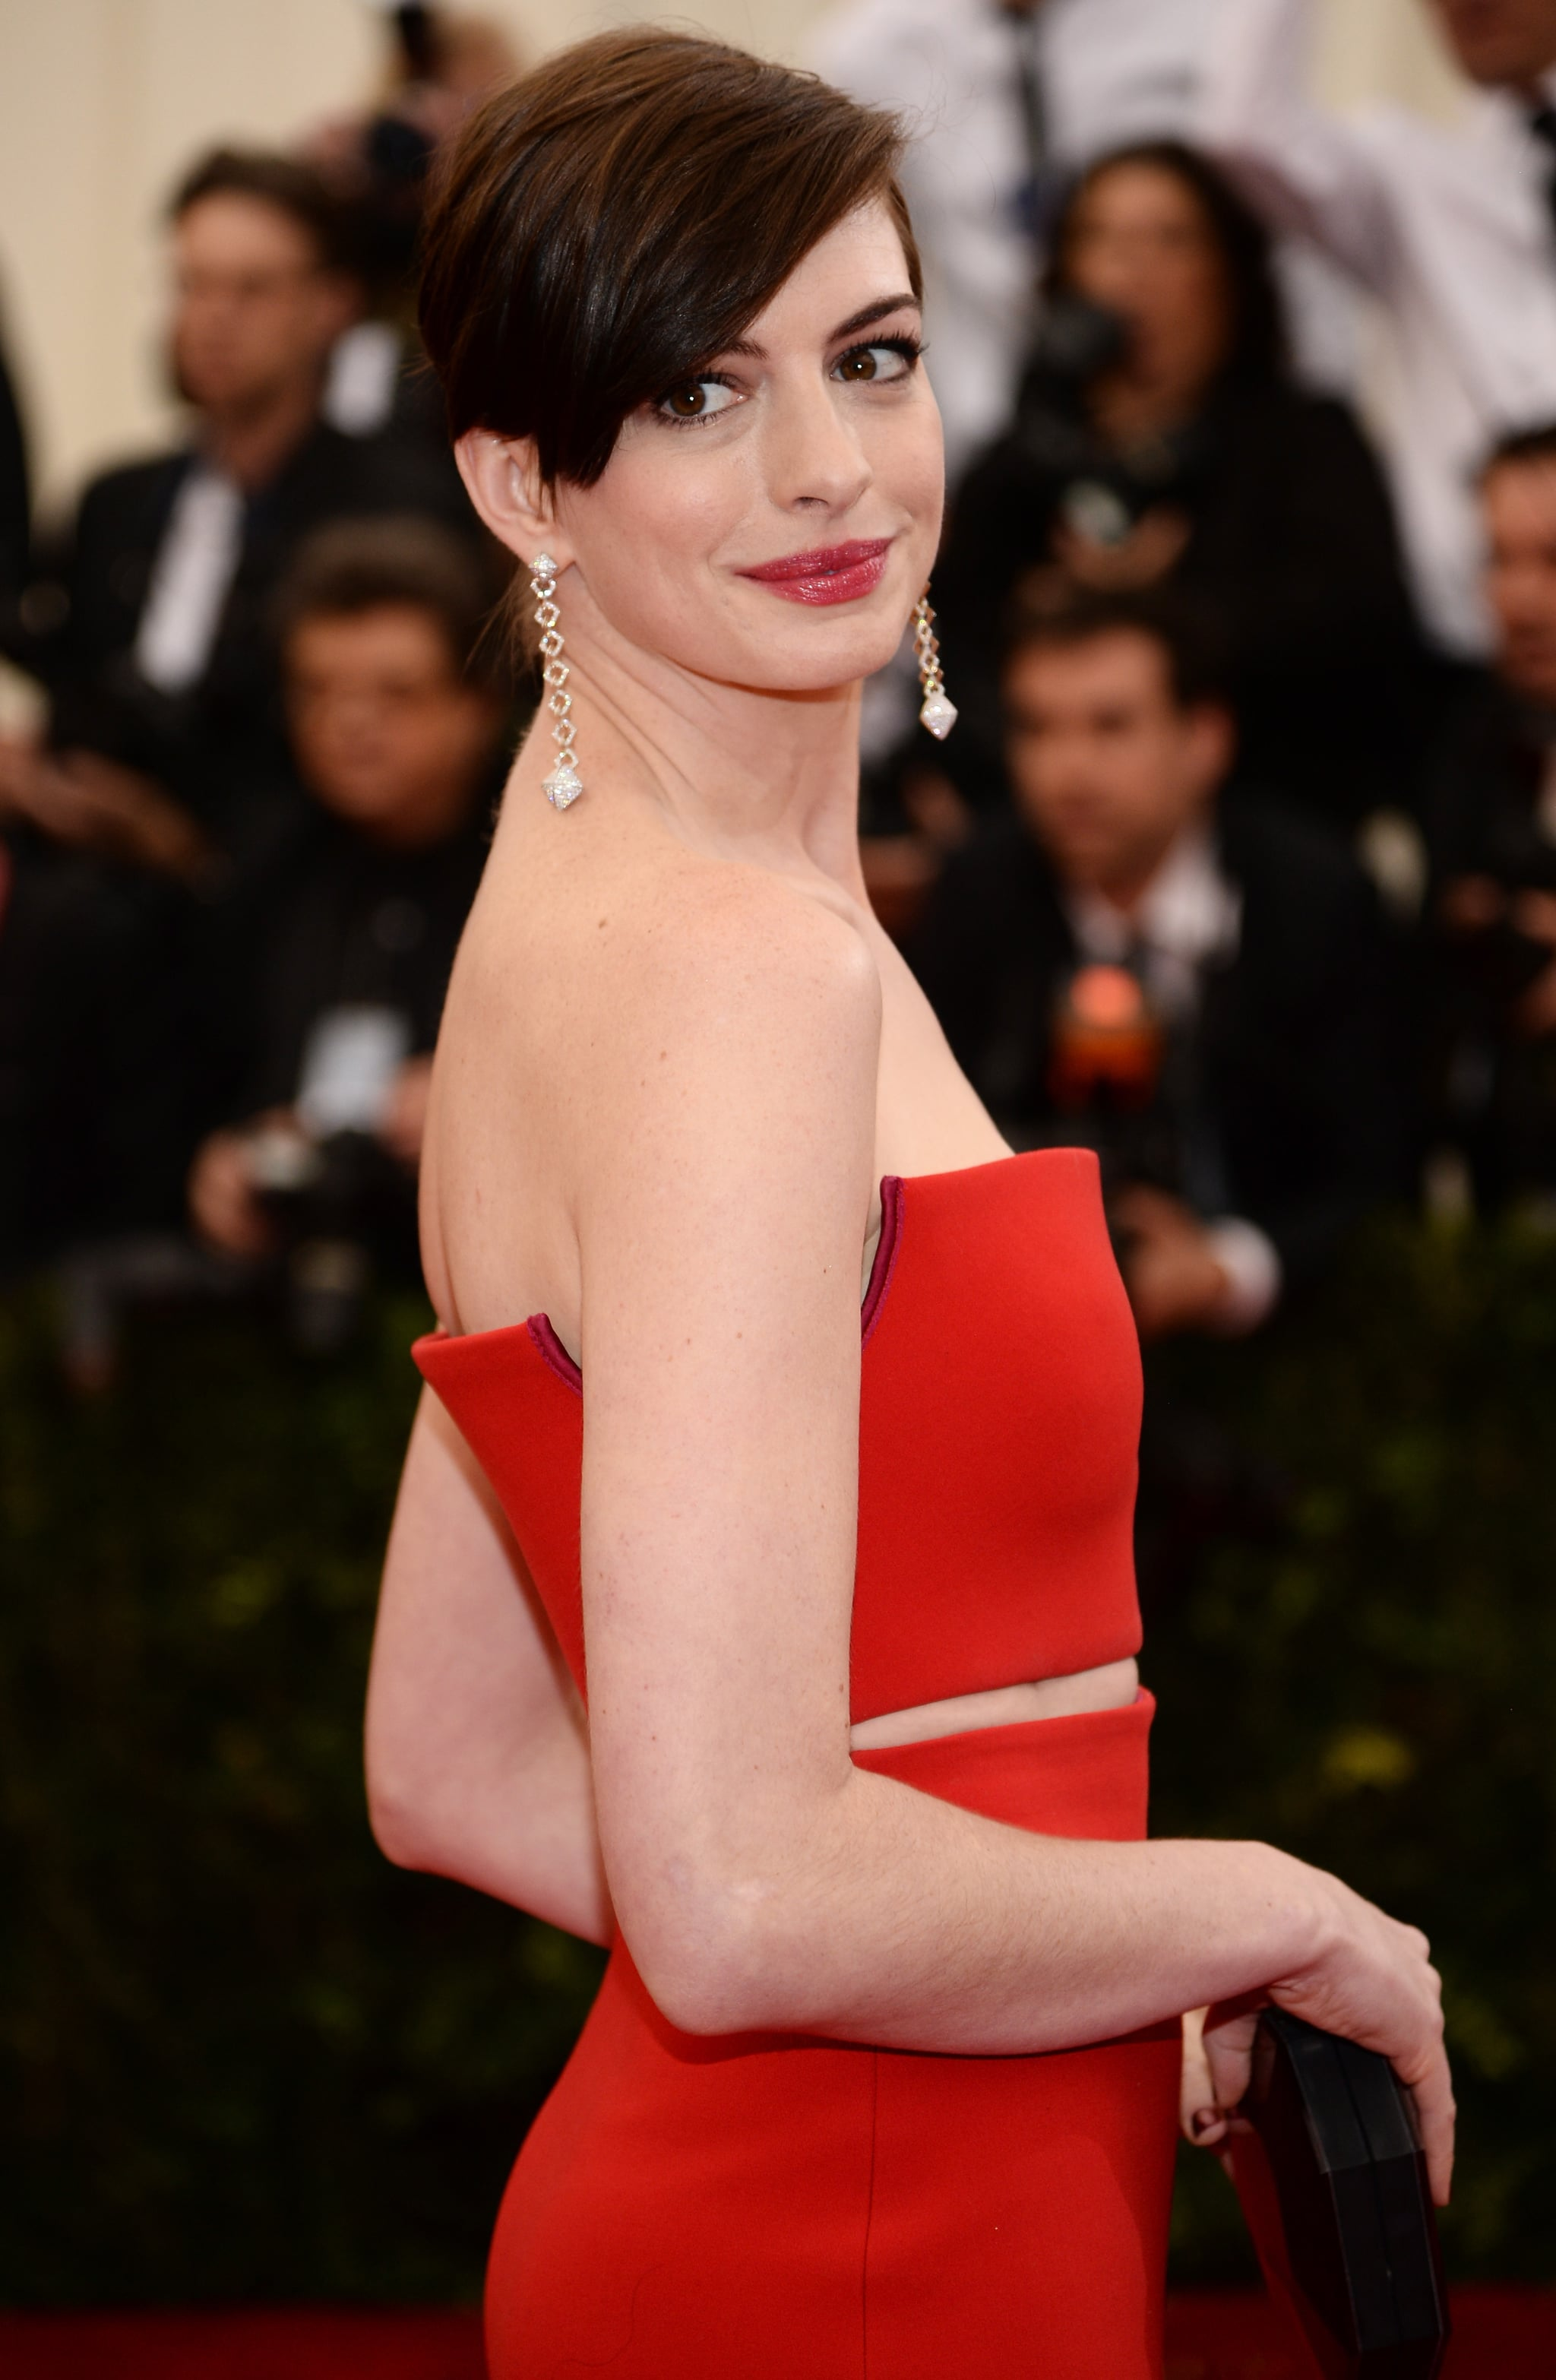 Anne Hathaway Images 2014 photo 21